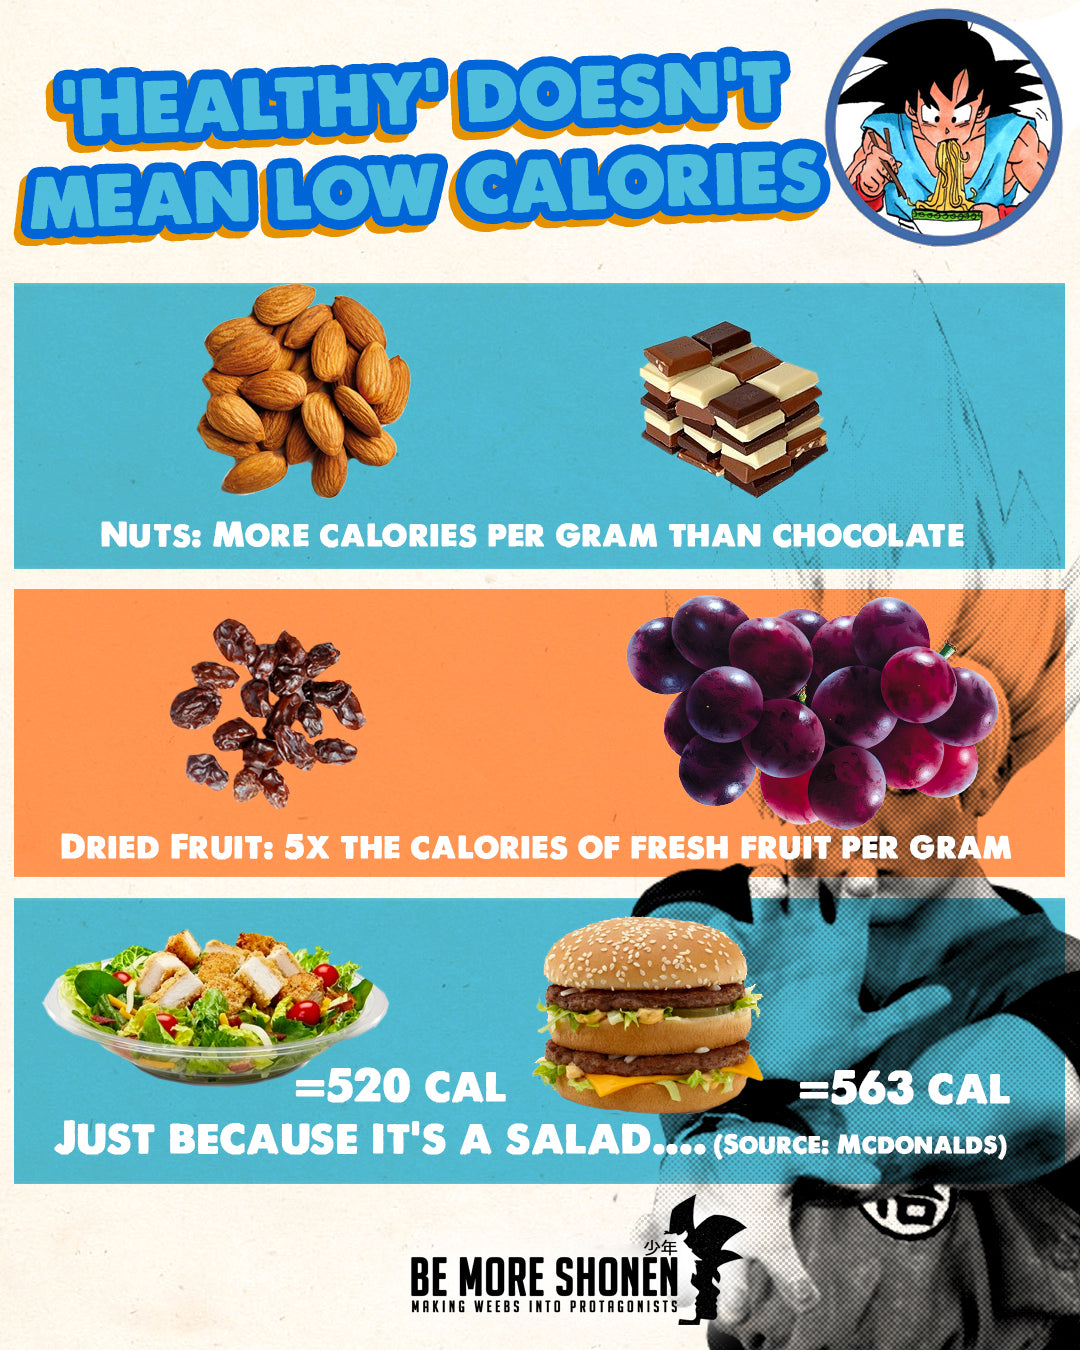 Healthy food doesn't mean weight loss food - an anime fans guide to sneaky calories in food